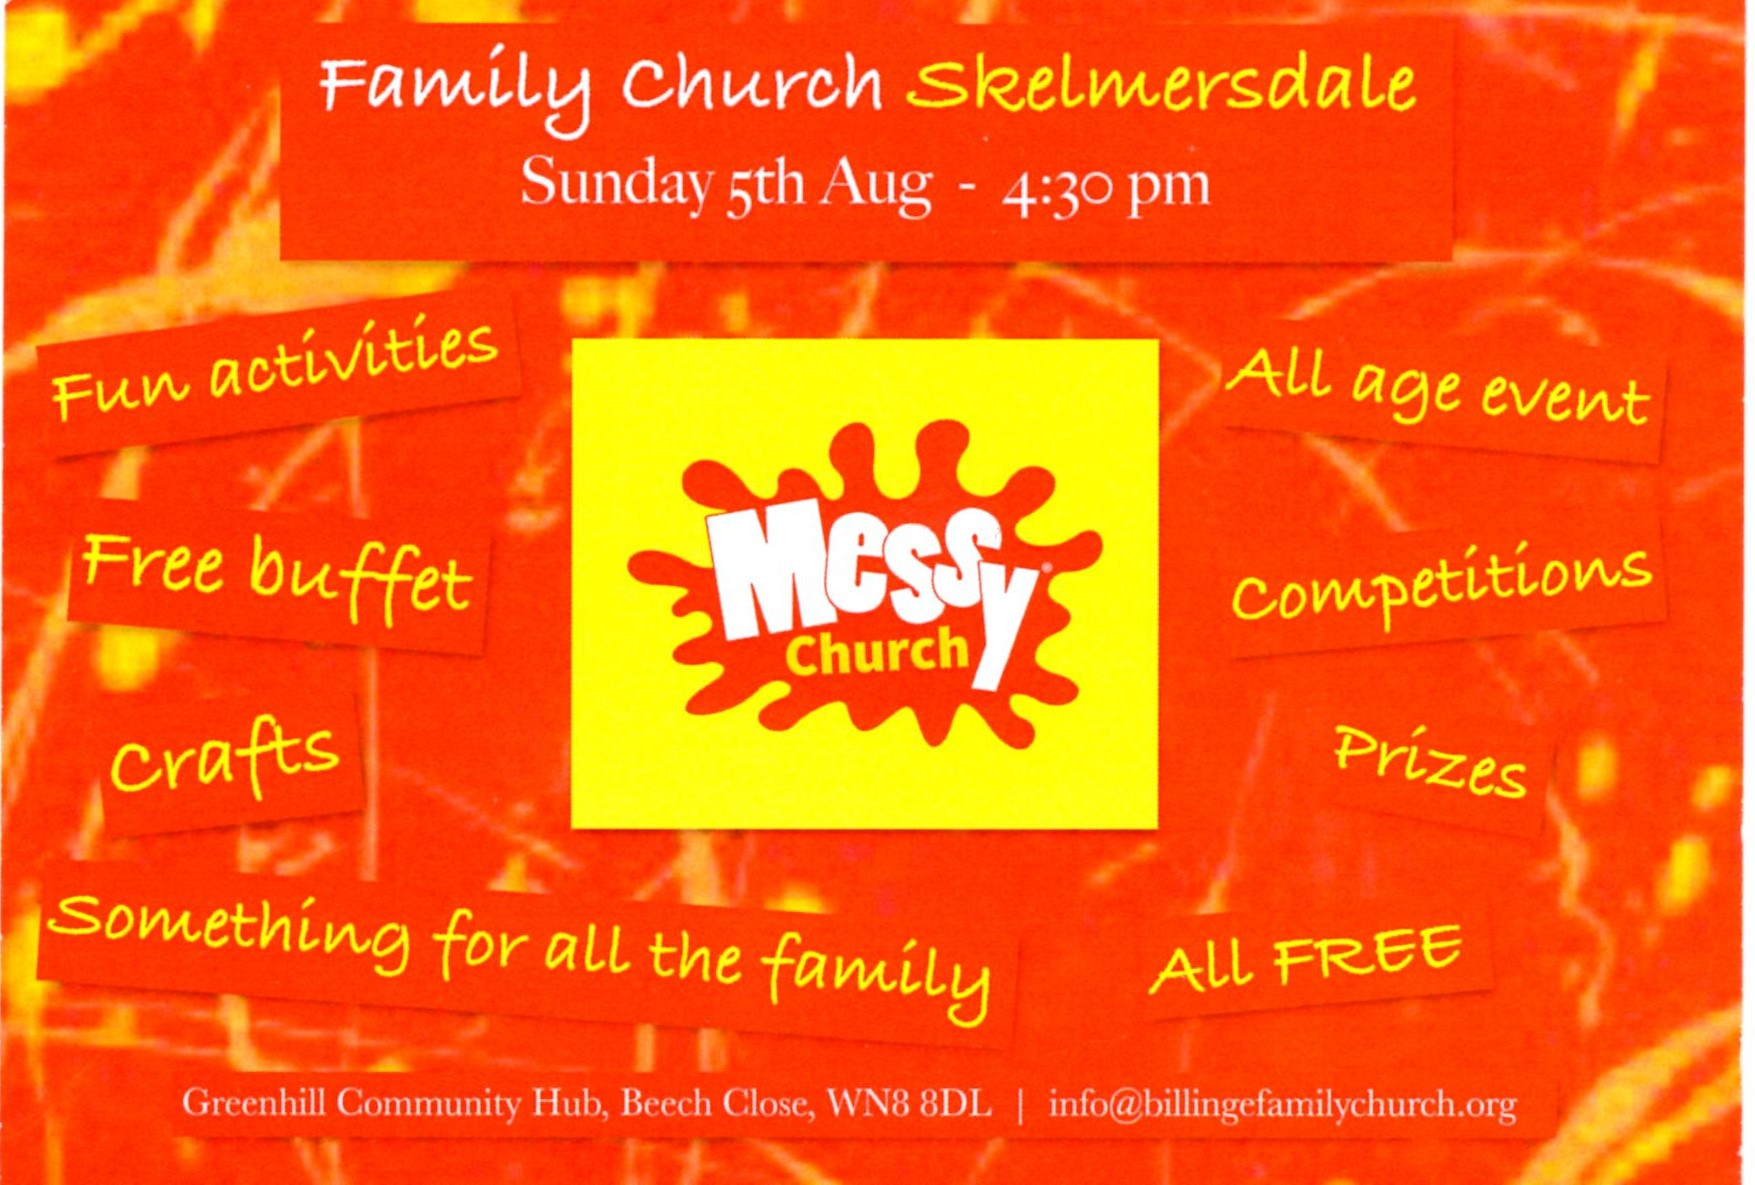 , Family Church Skelmersdale – Messy Church, Skem News - The Top Source for Skelmersdale News